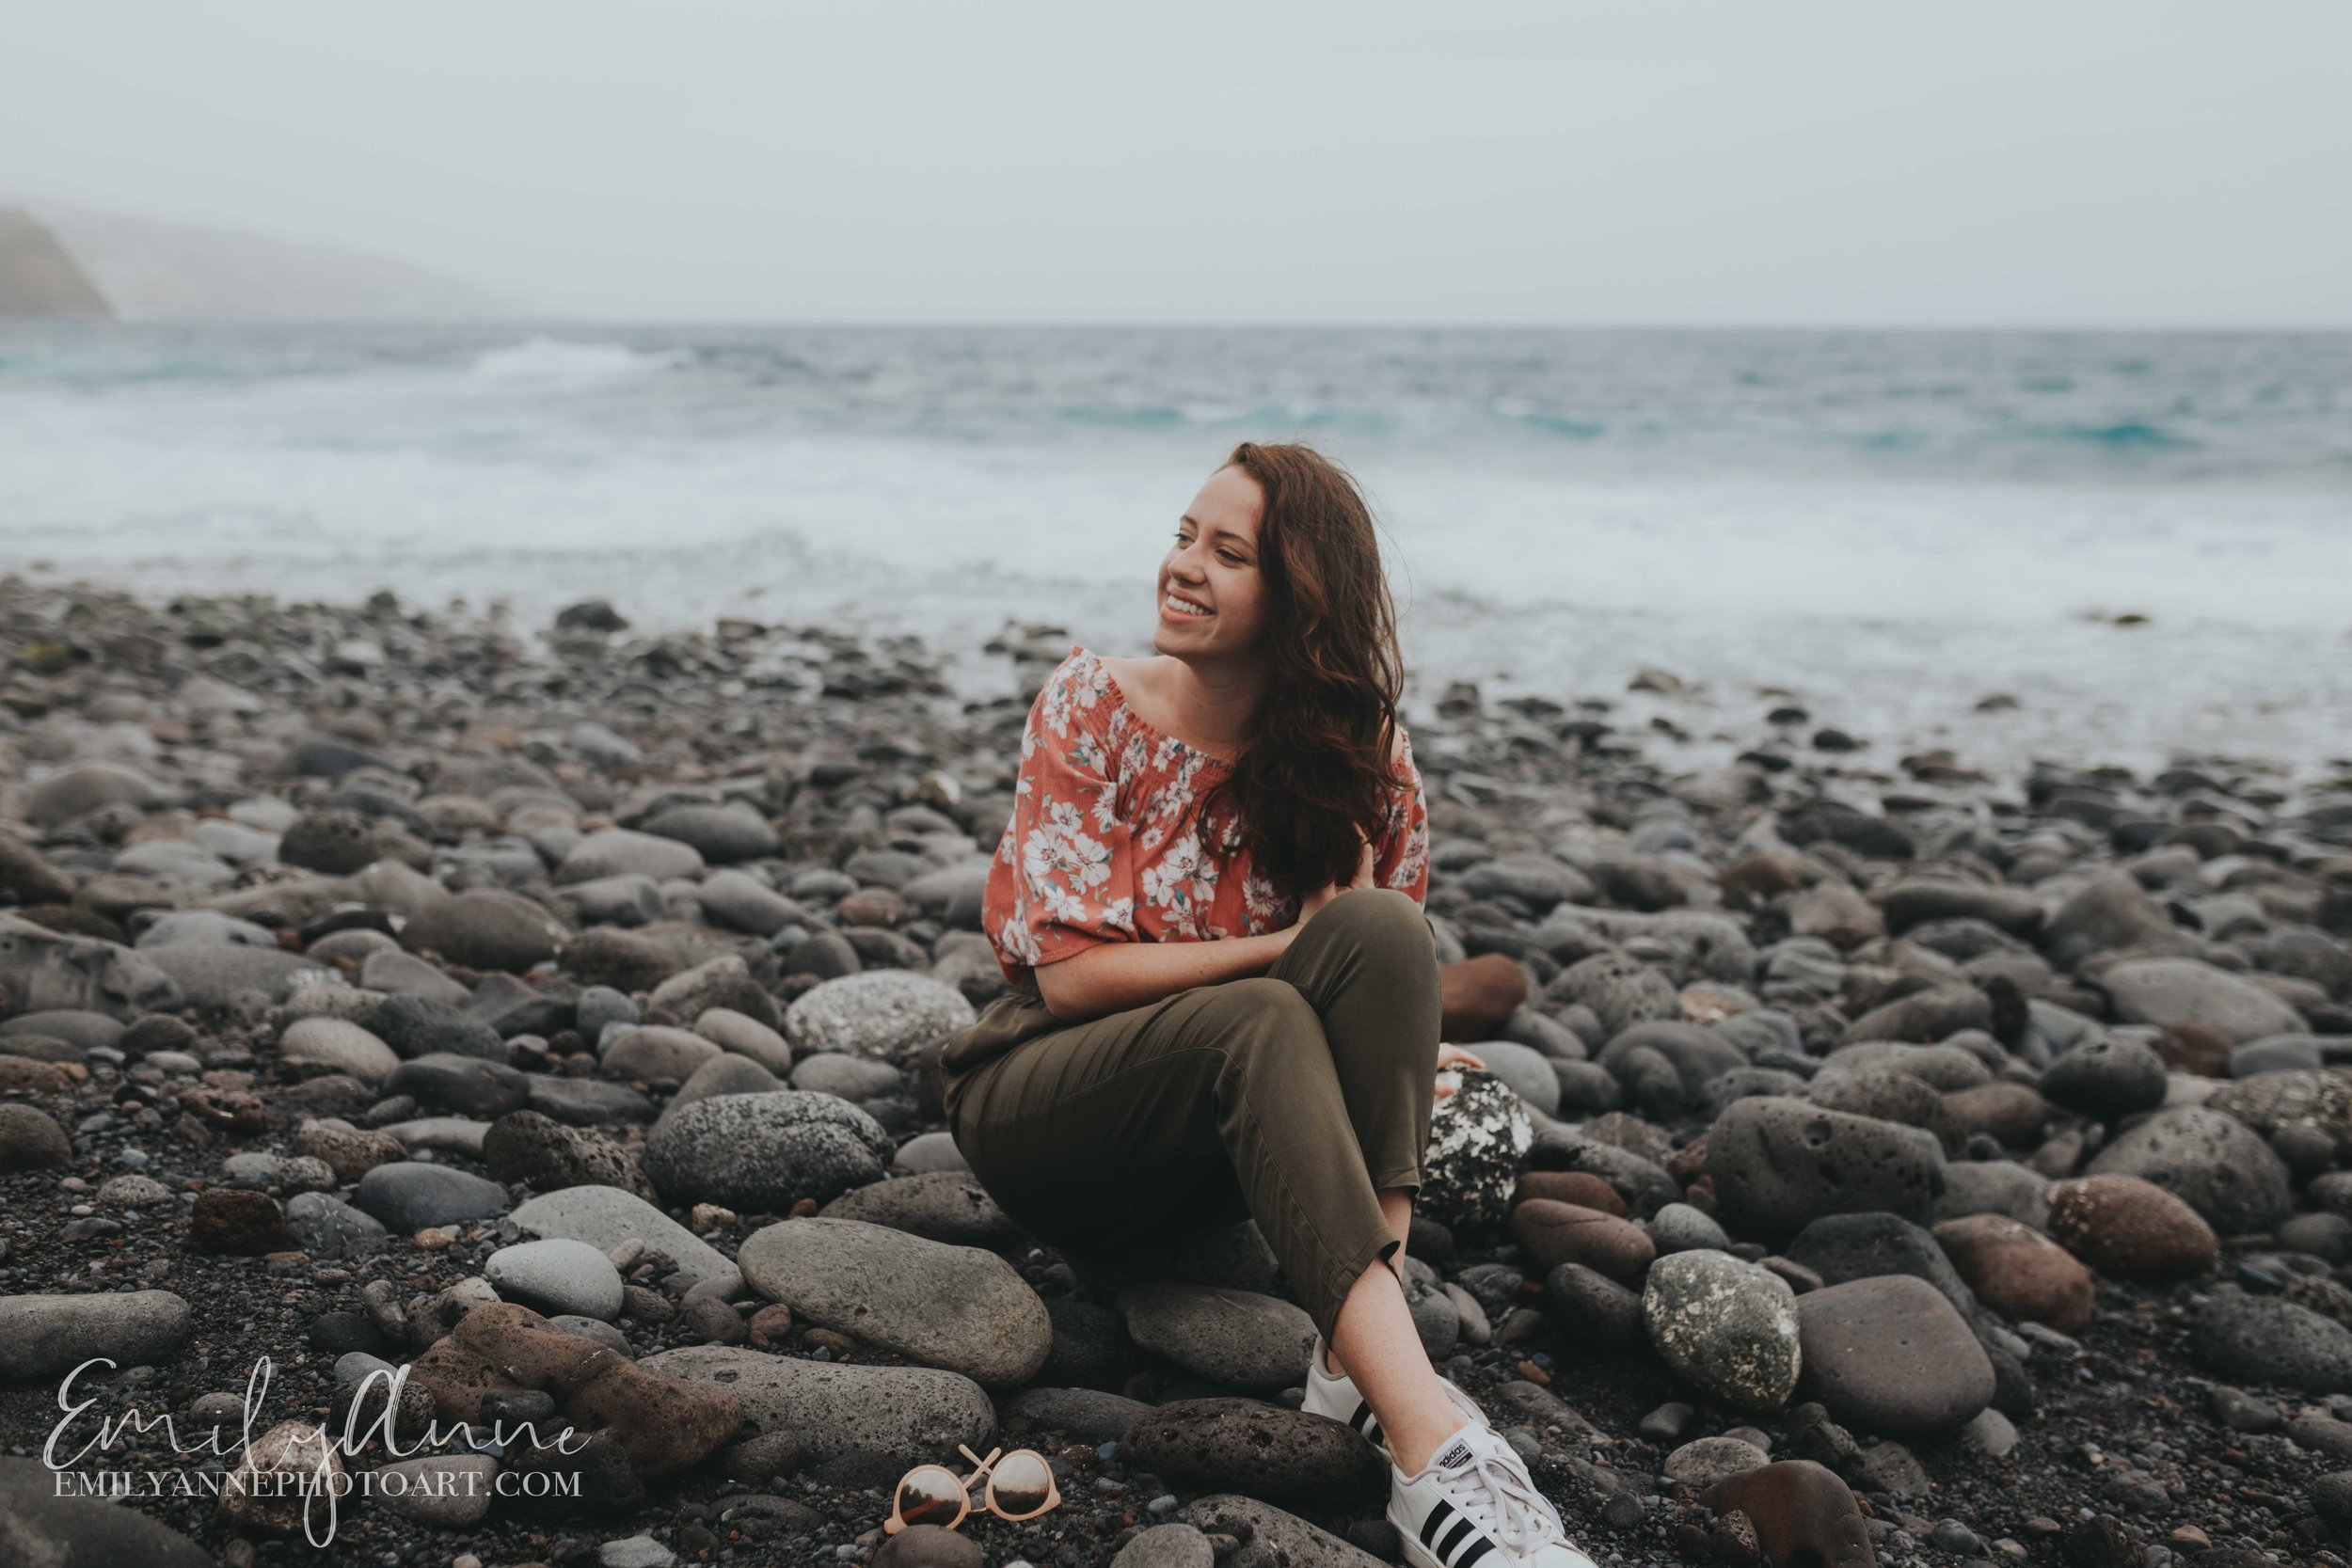 top posing for portrait photography best photographer tenerife Canary Islands by Nashville Barcelona Europe emily anne photo